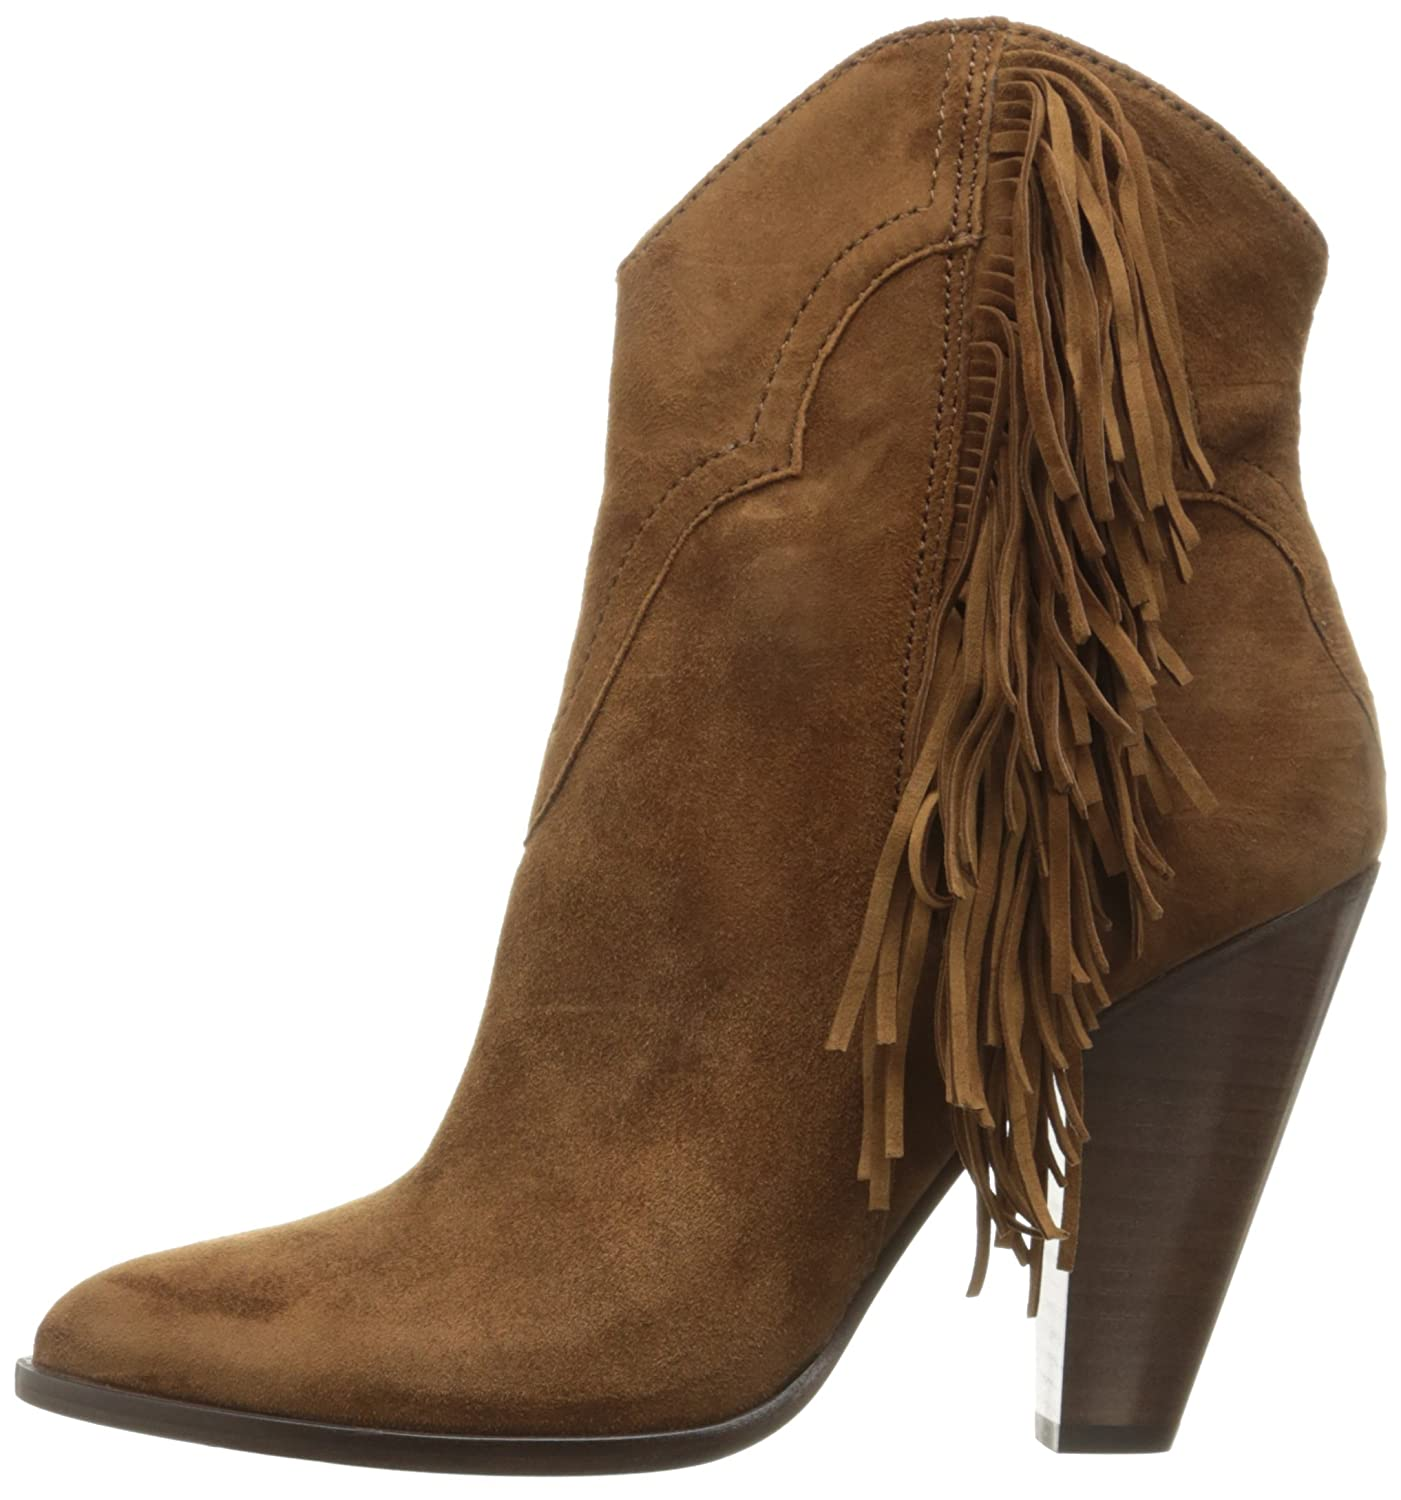 FRYE Boot Women's Remy Fringe Short Boot FRYE B0193Z68PS 11 B(M) US|Wood aca4c8